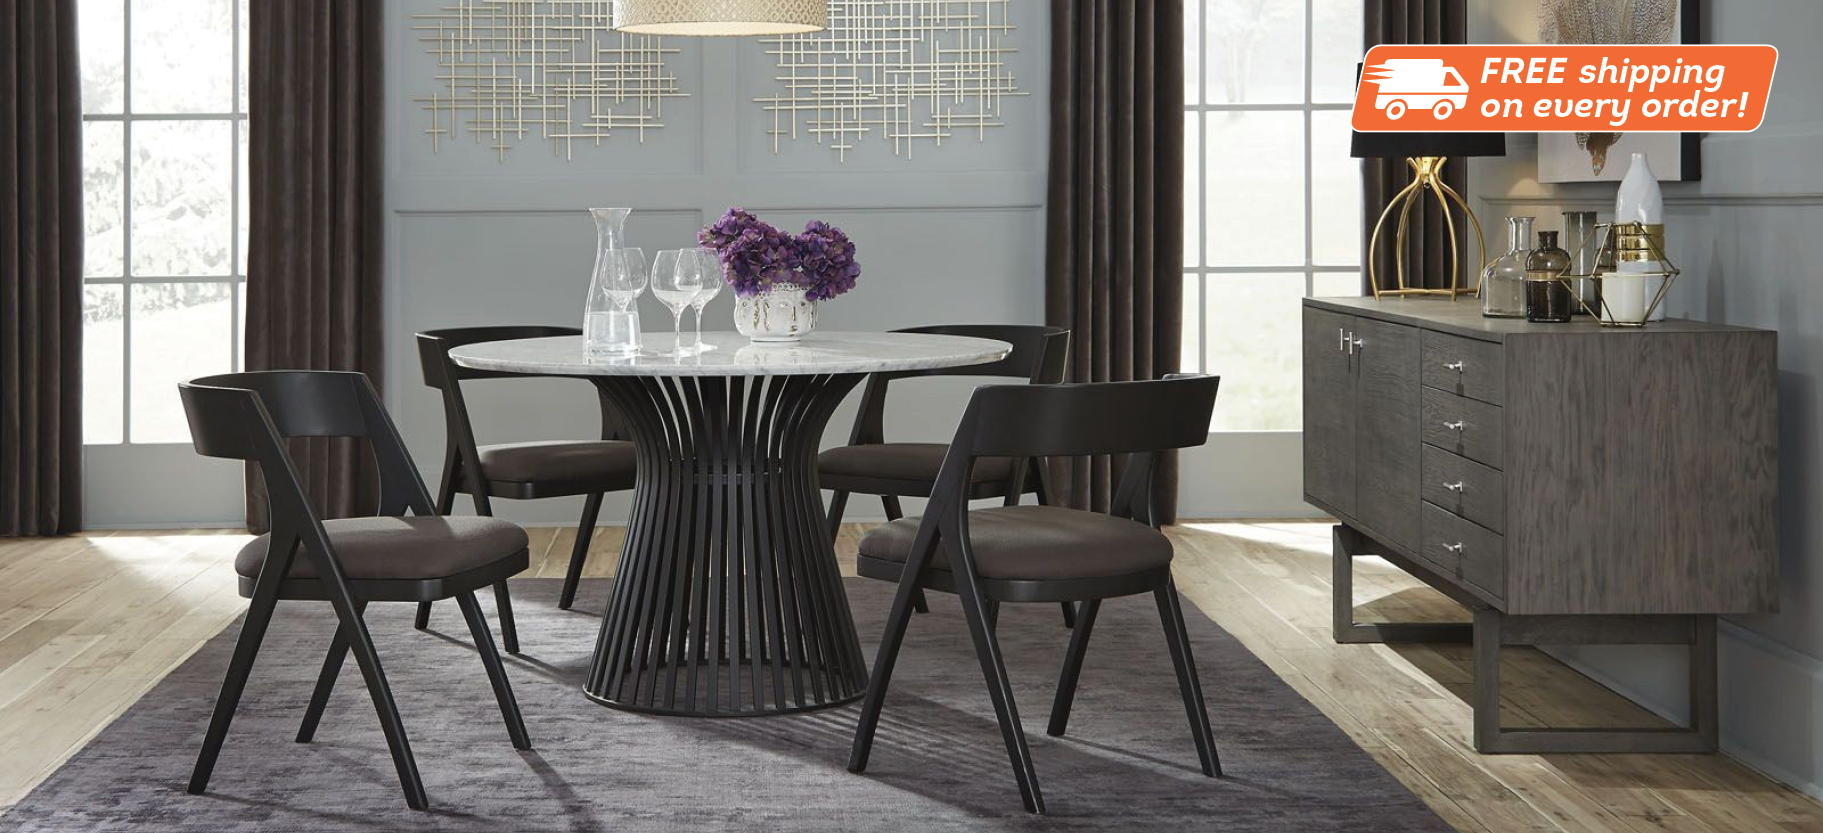 dining room furniture coleman diningroom main banner table accents sets industrial style coffee tables white lift top ikea folding garden side modern design homesense chairs and